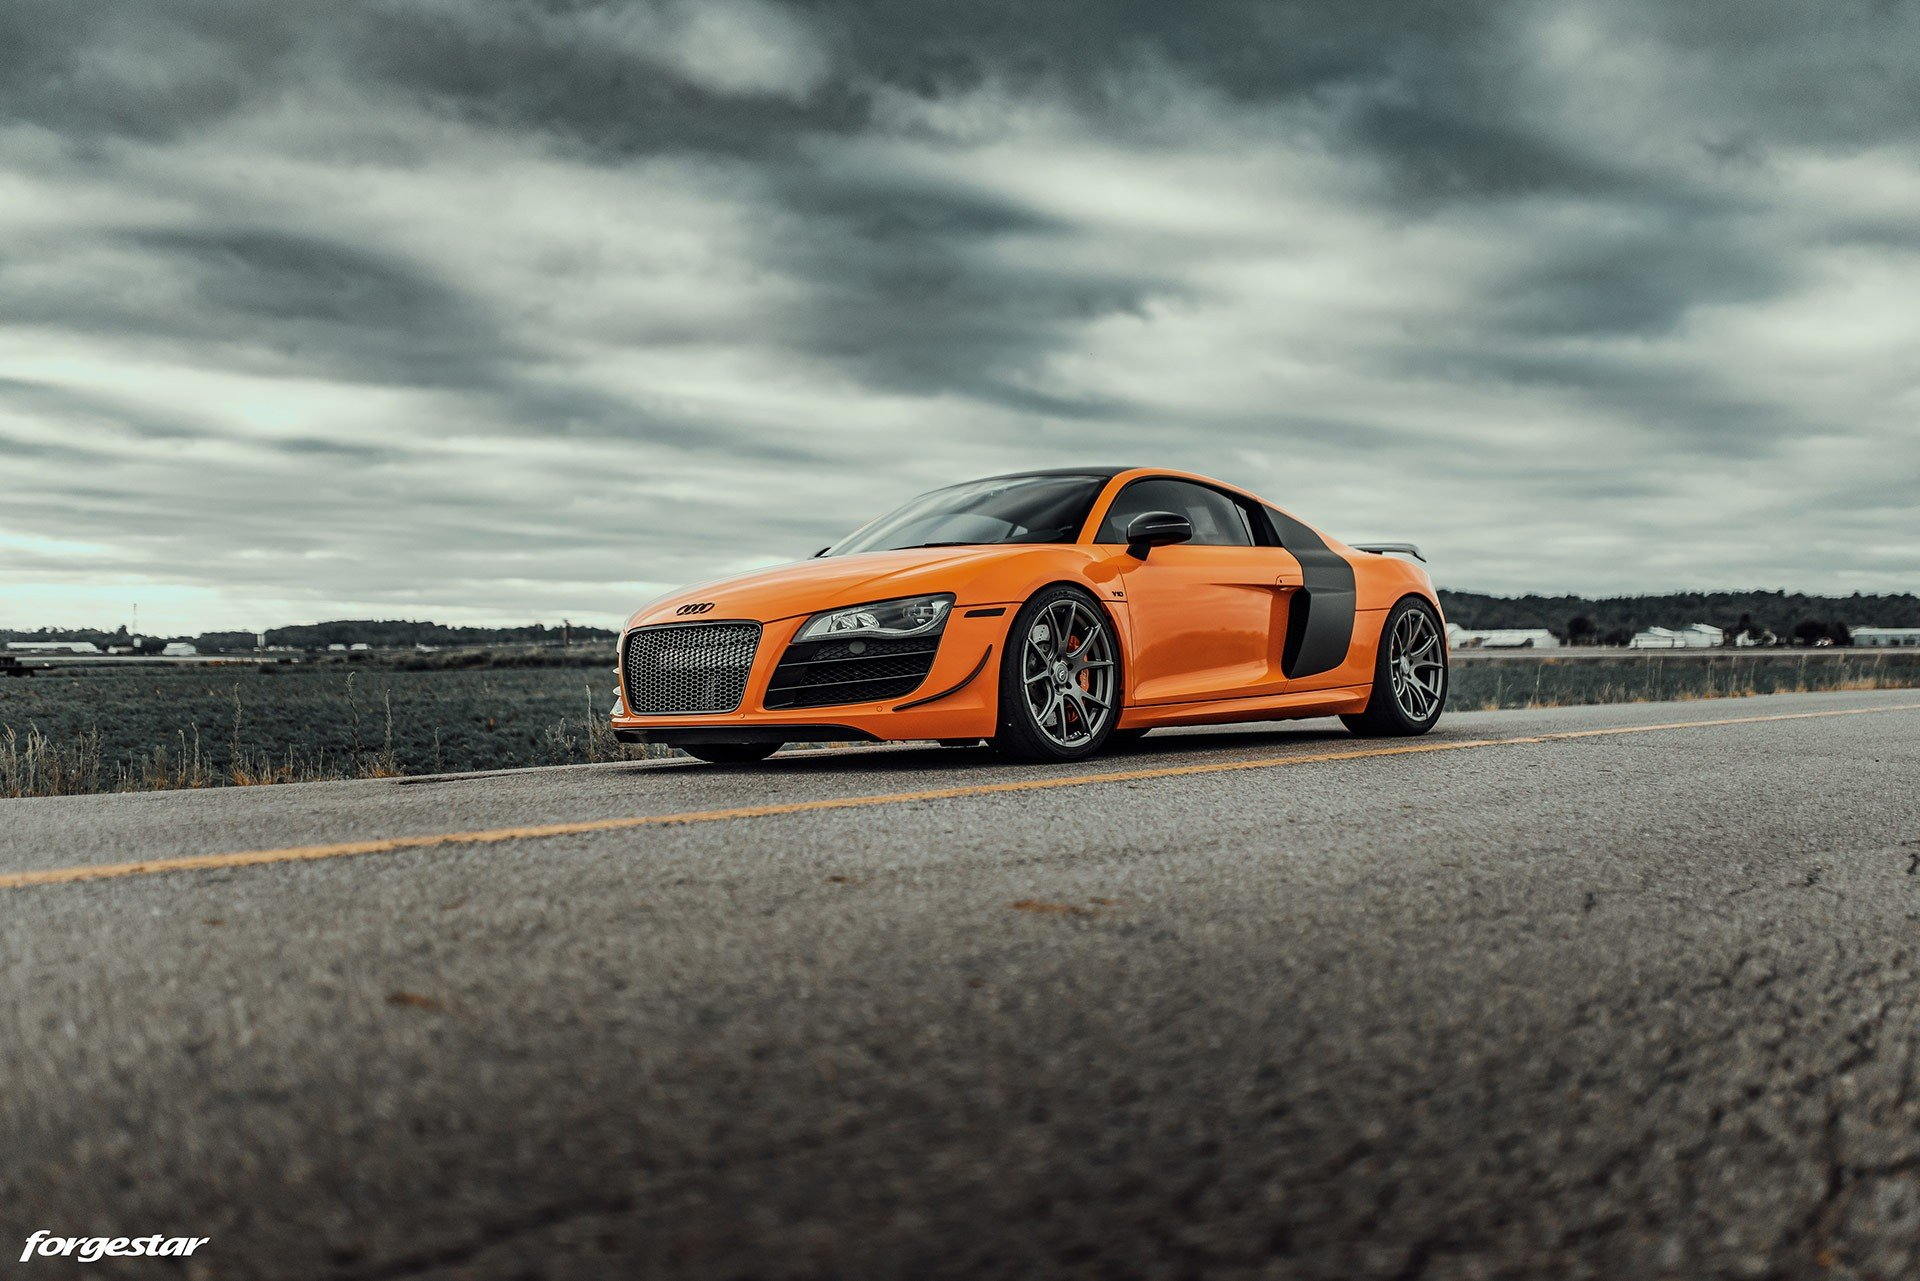 raucous-audi-r8-with-stick-shift-n-a-v10-is-what-supercar-dreams-are-made-of_1.jpg